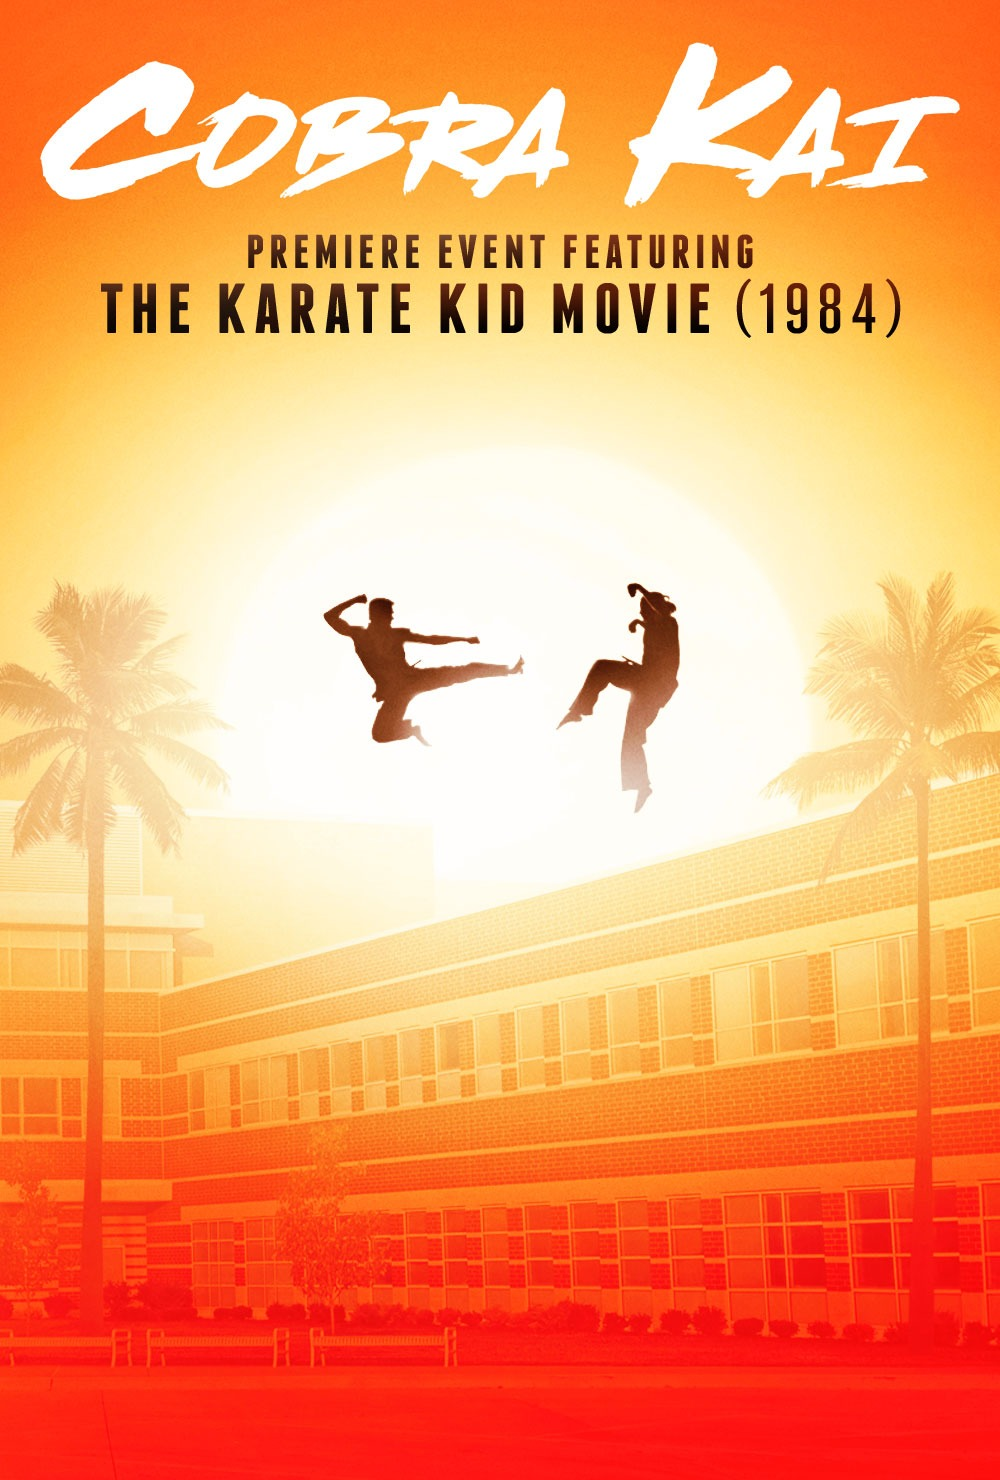 Cobra Kai Premiere & Karate Kid